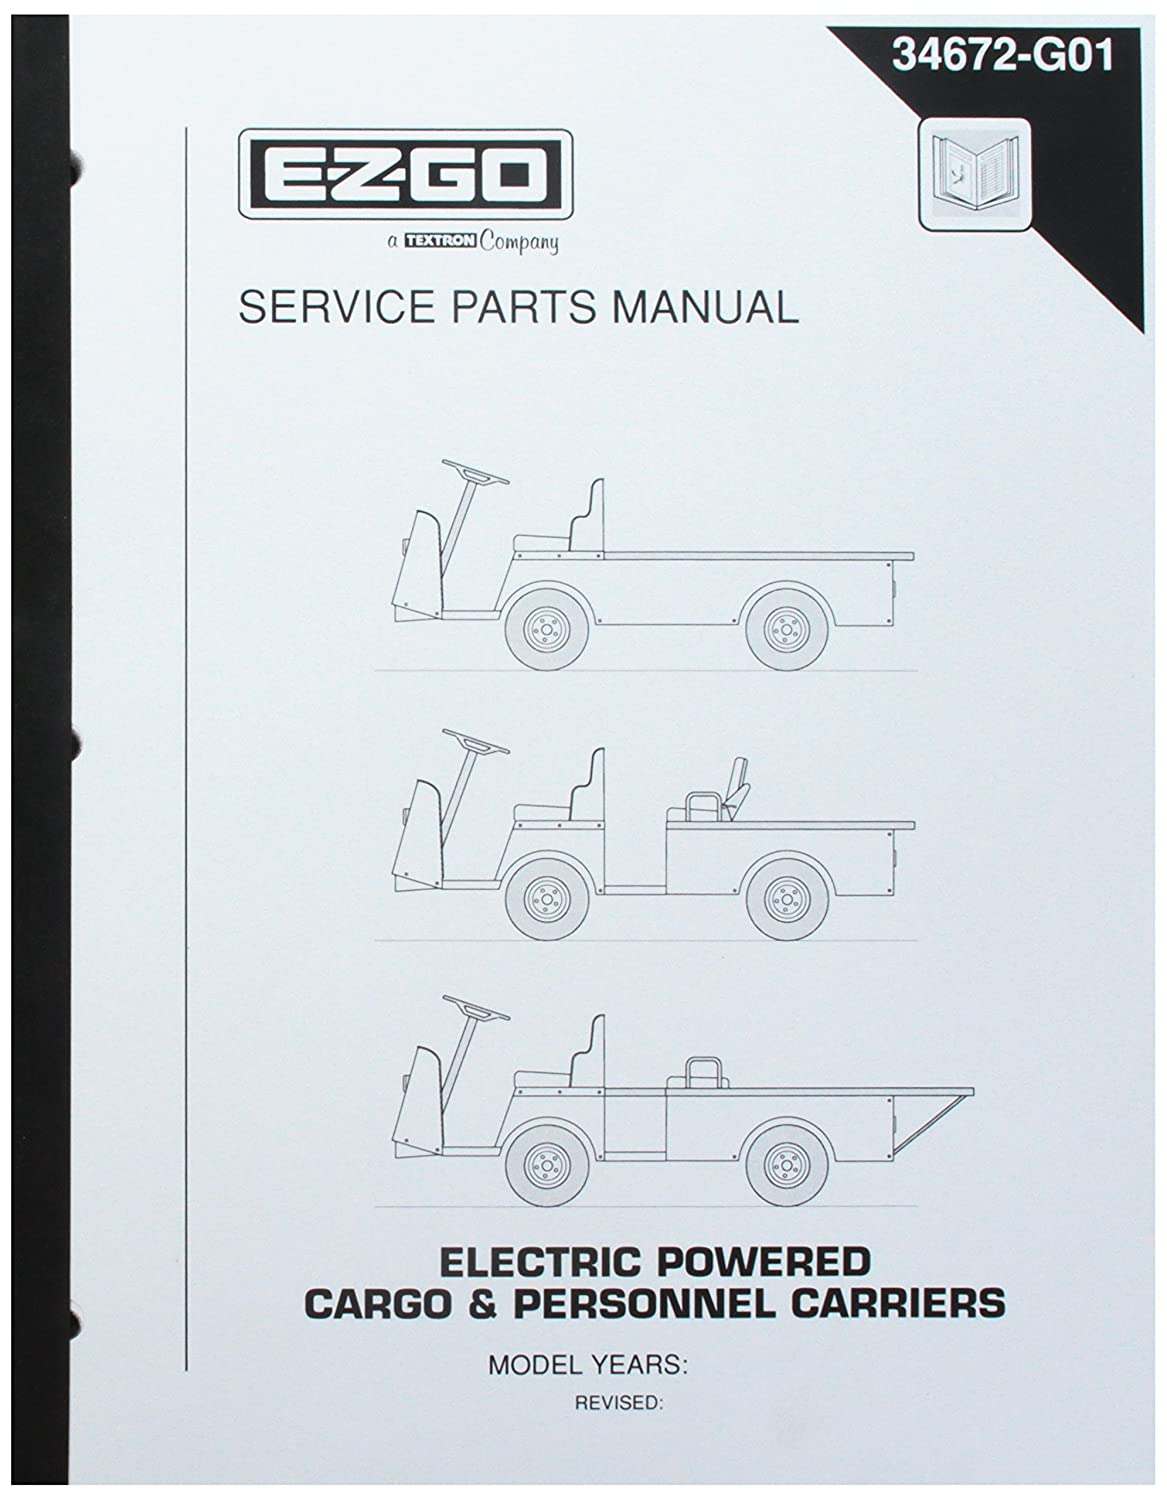 Amazon.com : EZGO 34672G01 1998-1999 Service Parts Manual for Electric  Cargo and Personnel Carrier Utility Vehicles : Outdoor Decorative Fences :  Garden & ...